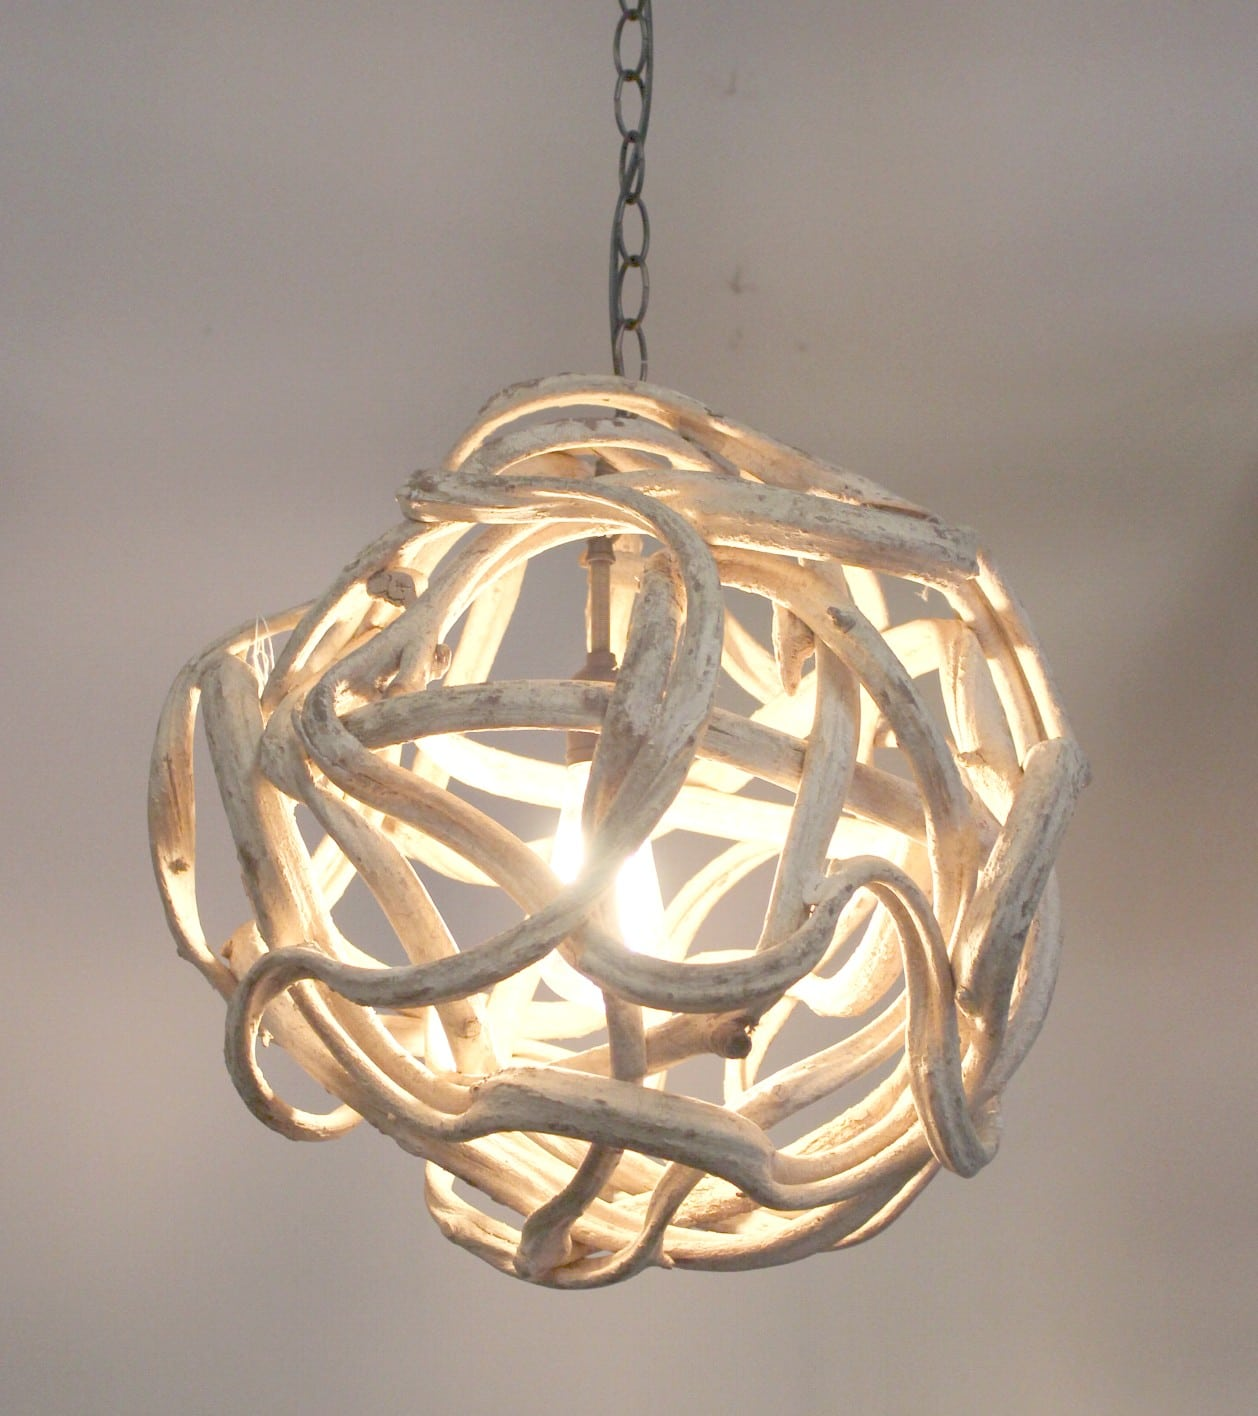 lighting mo vine on eventful more for the click chandelier curvy springfield vinechandelierpopup rental classic information images